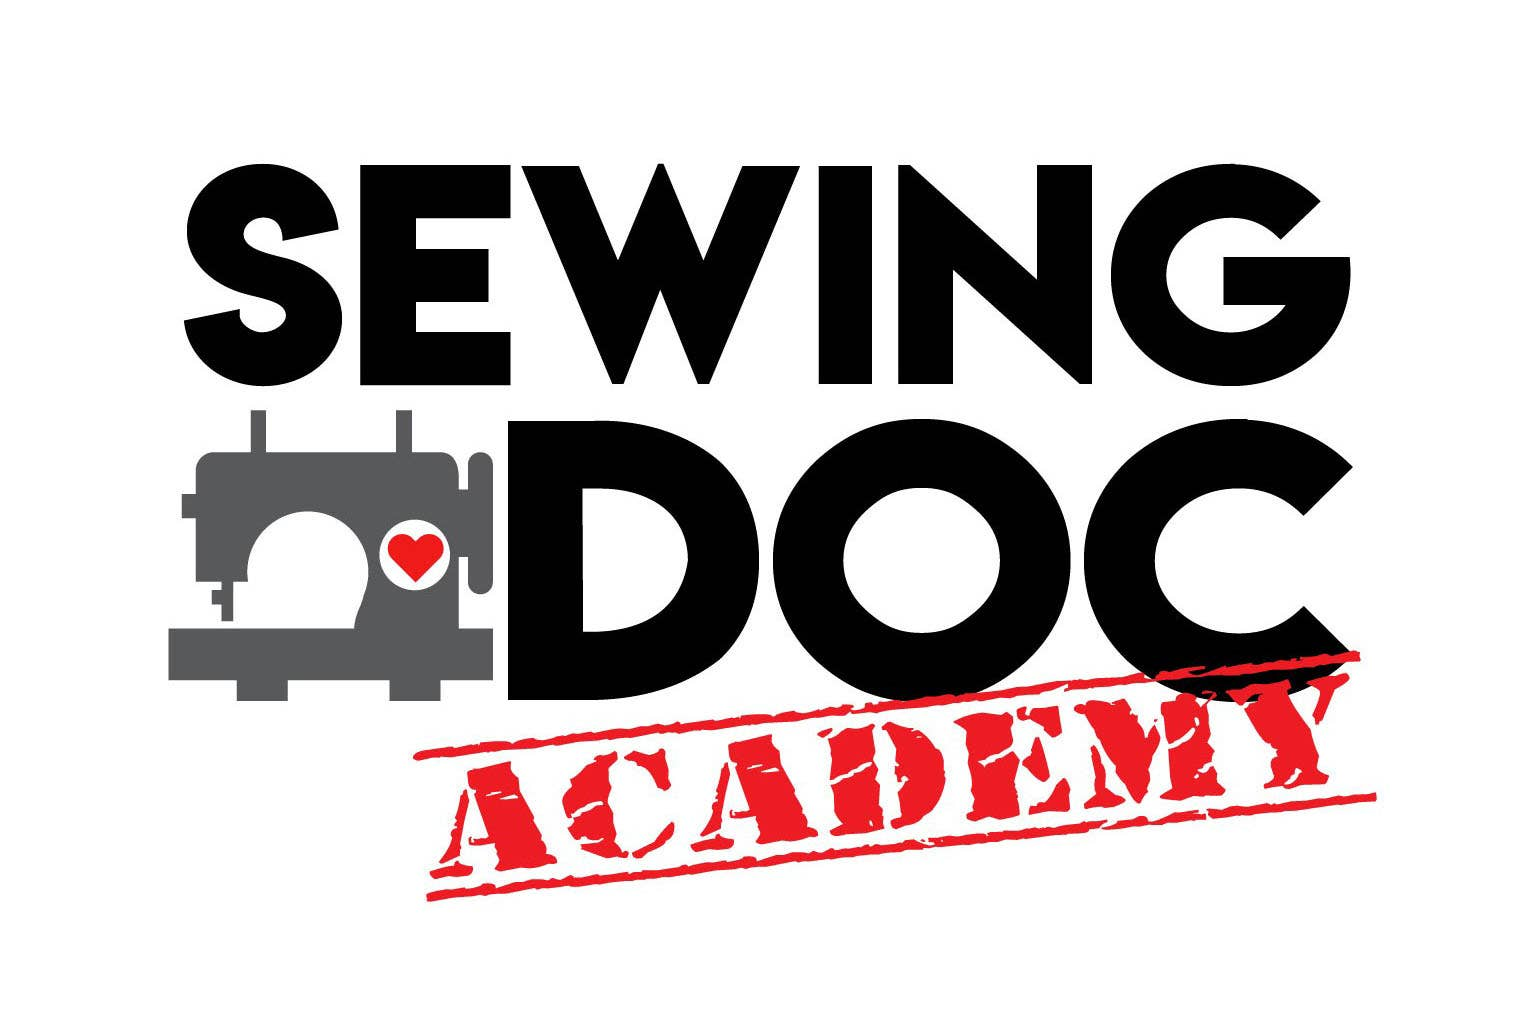 Sewing Doc Academy